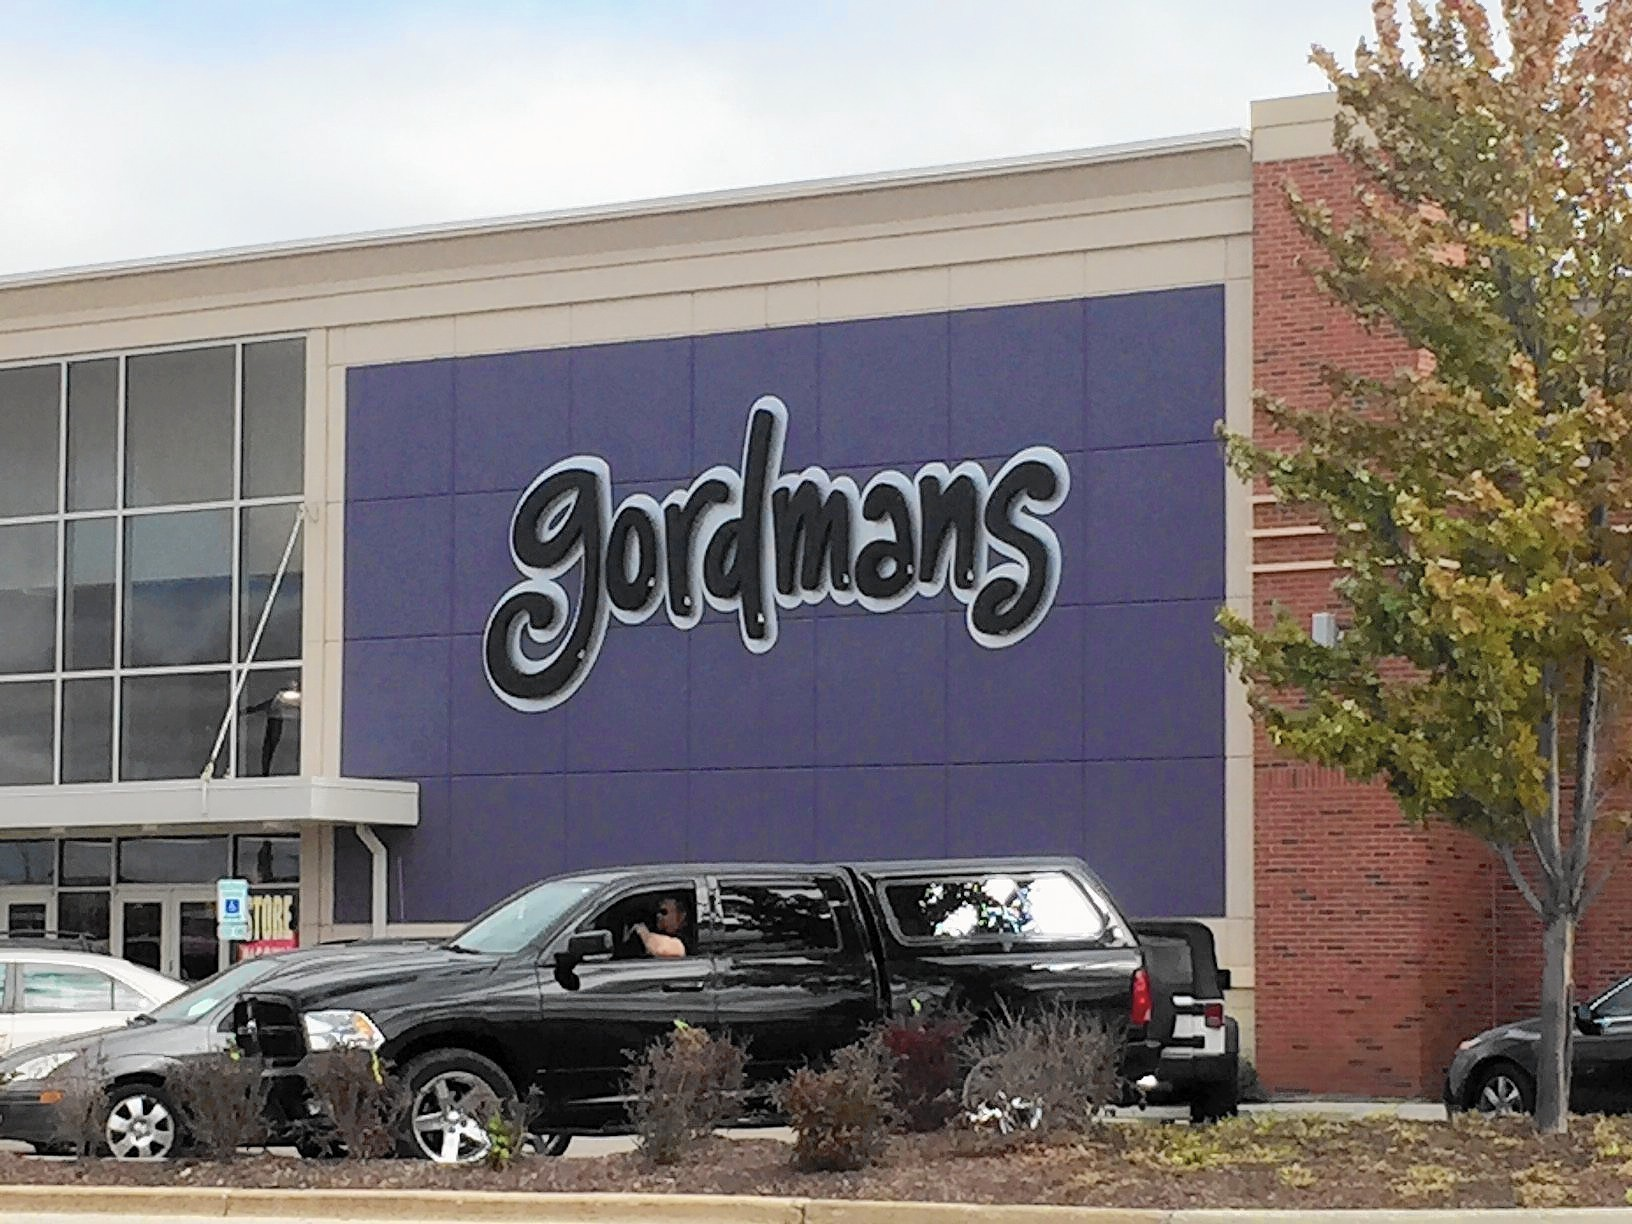 Gordman 39 S Set To Close Art Van Furniture To Open In Its Place Elgin Courier News